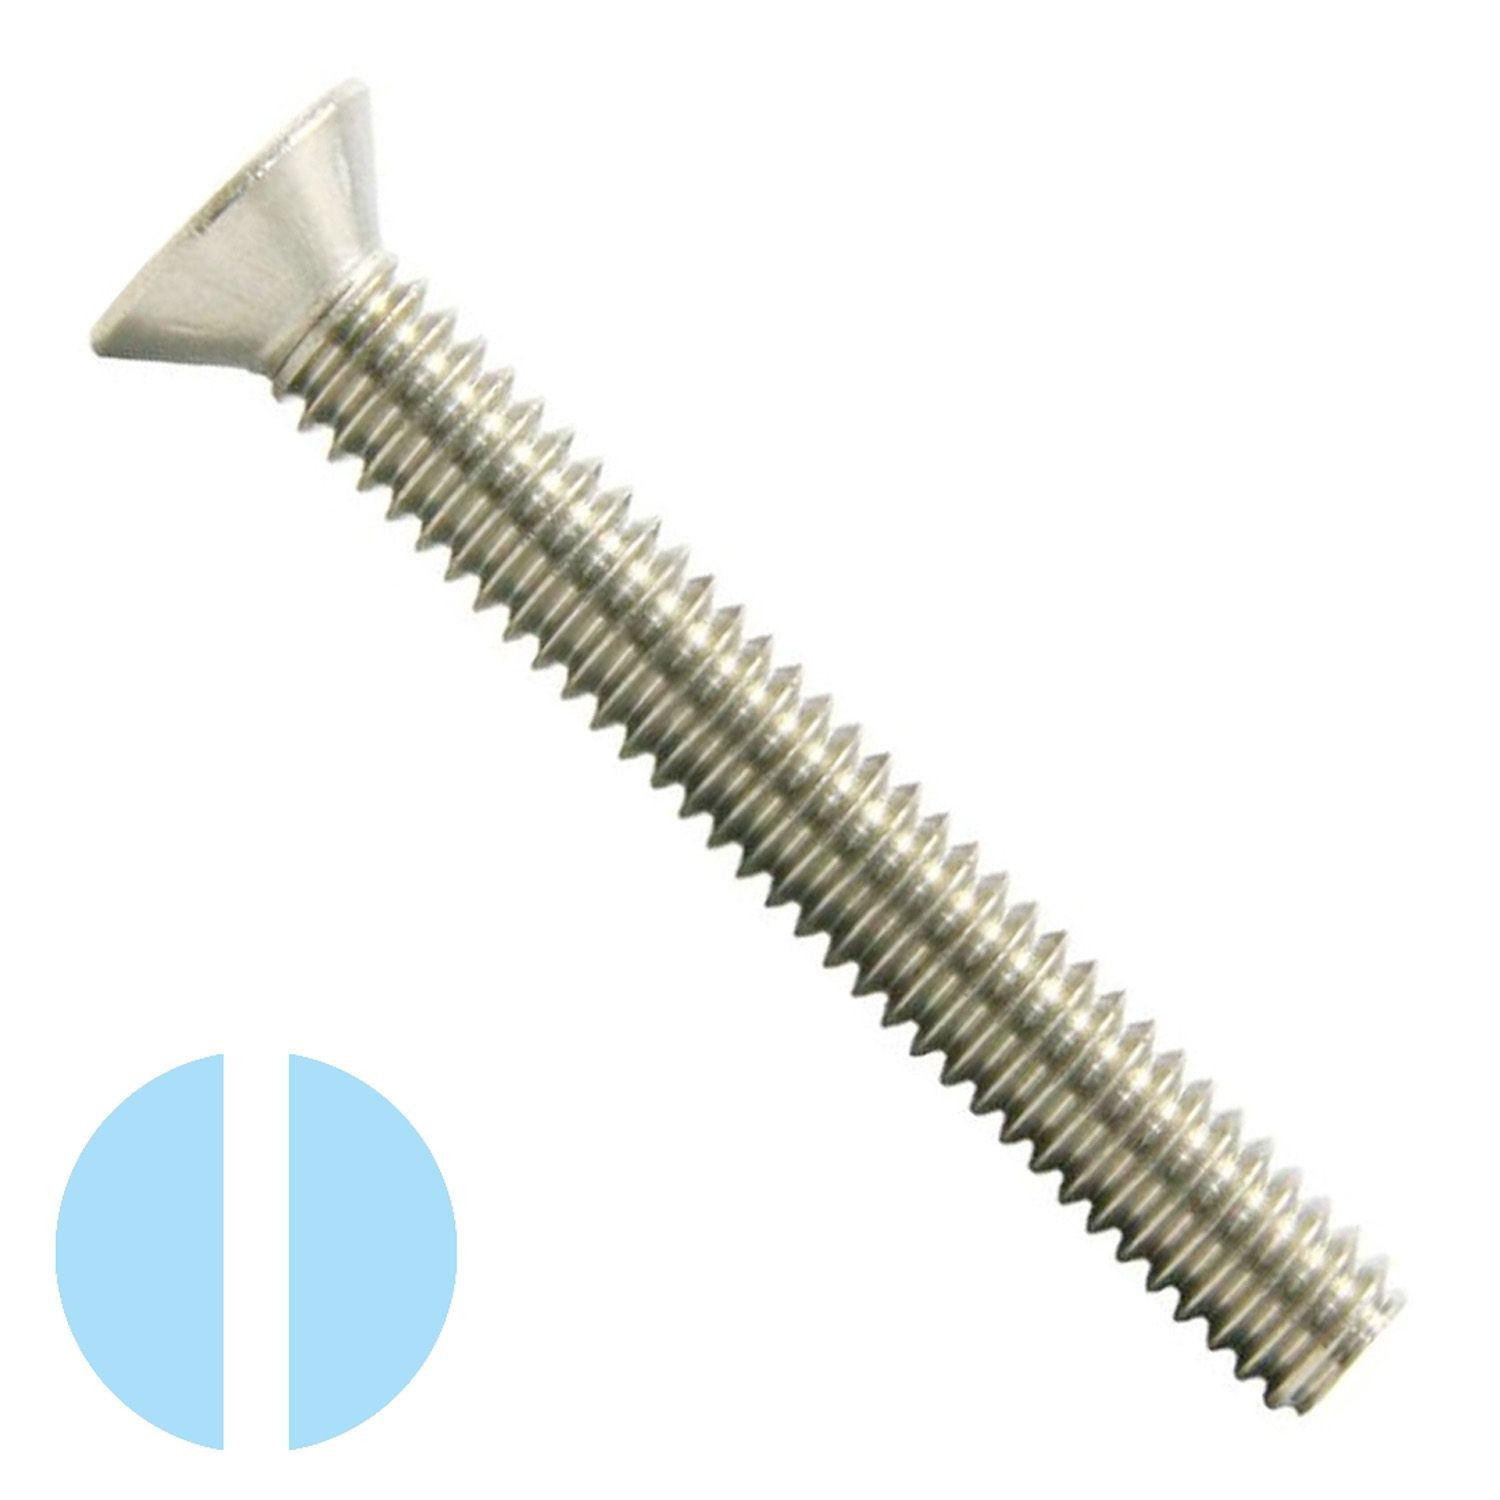 "#10-32 x 1-1/4"" Stainless Steel Slotted Flat Head Machine Screw 18-8"